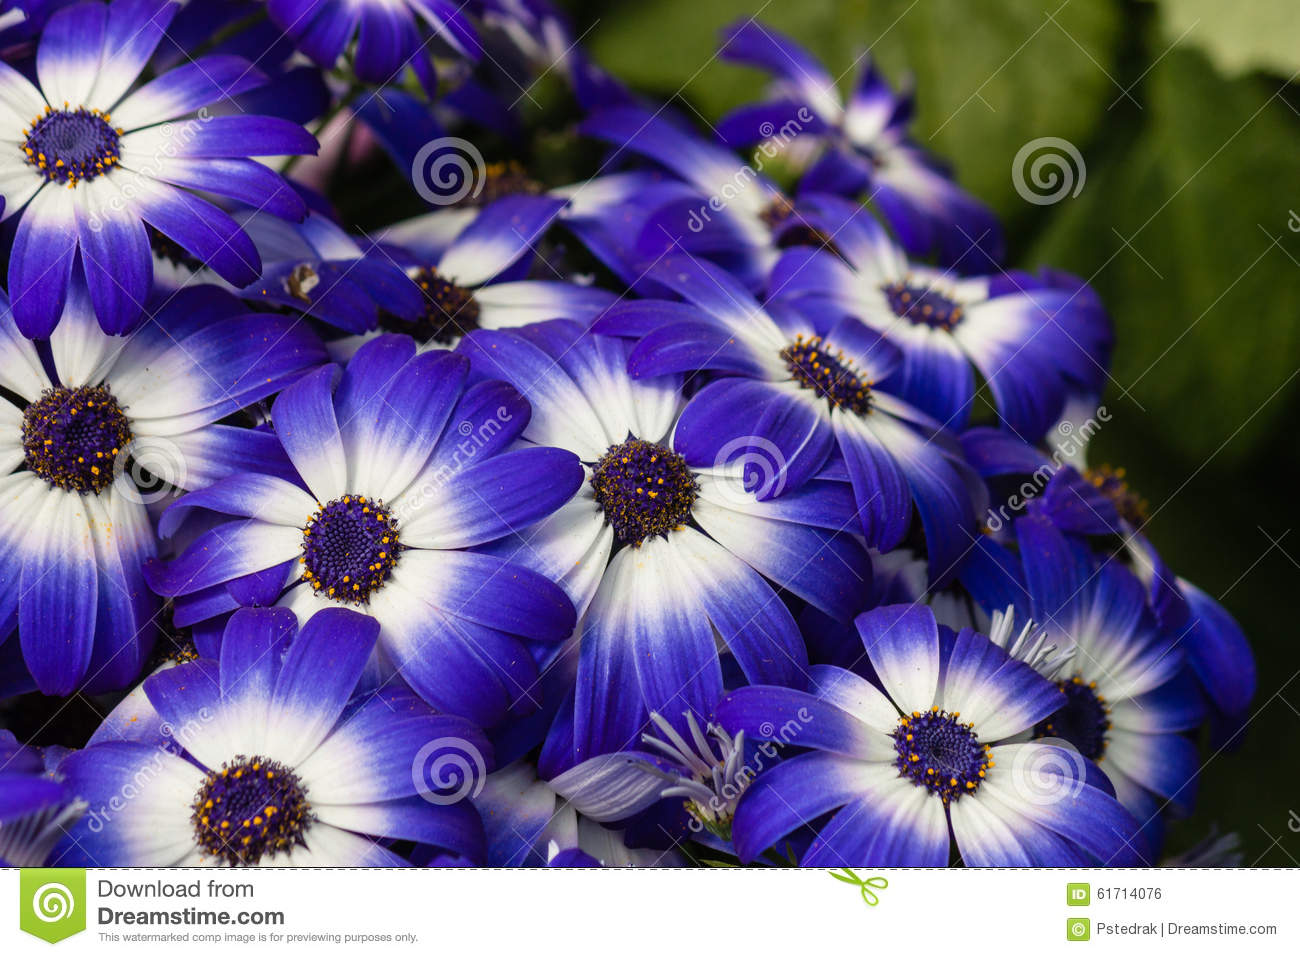 fleurs bleues et blanches d 39 osteospermum photo stock image 61714076. Black Bedroom Furniture Sets. Home Design Ideas